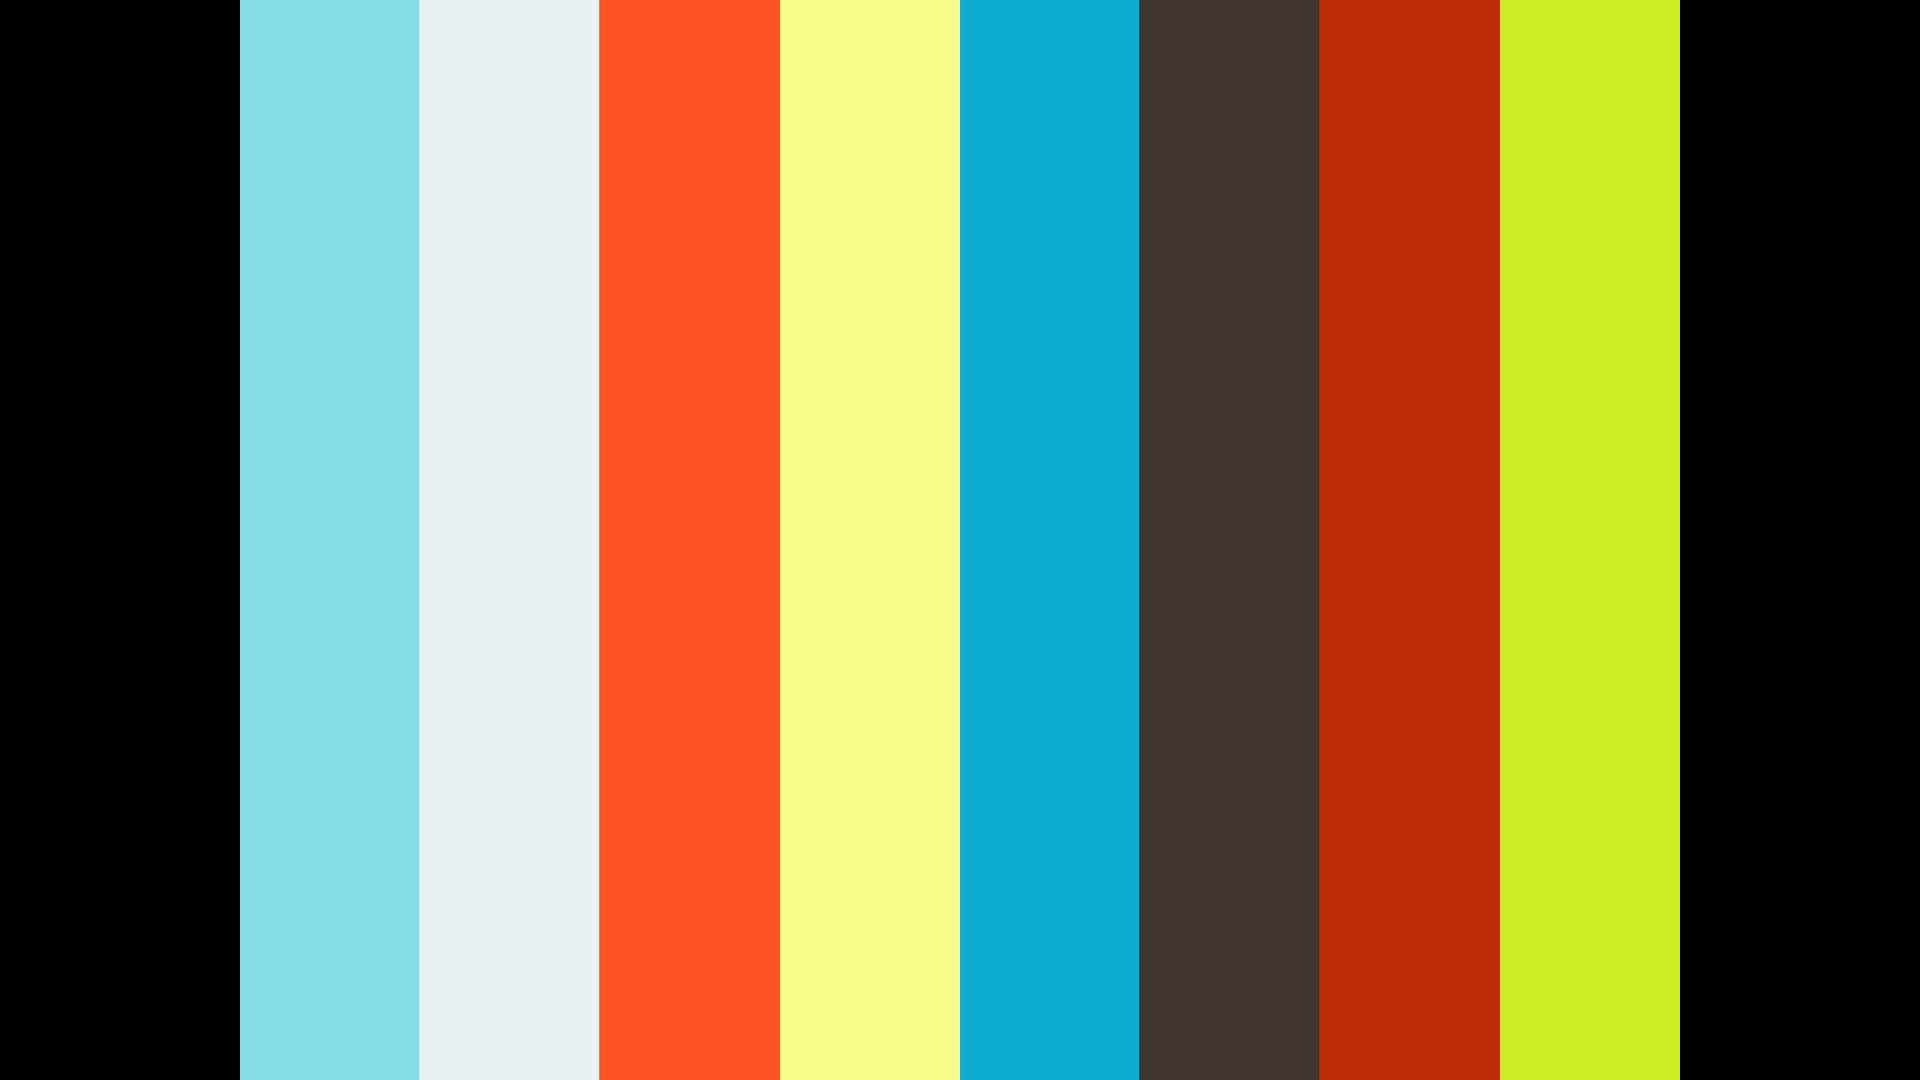 BUILDING FAITH 8-7-16